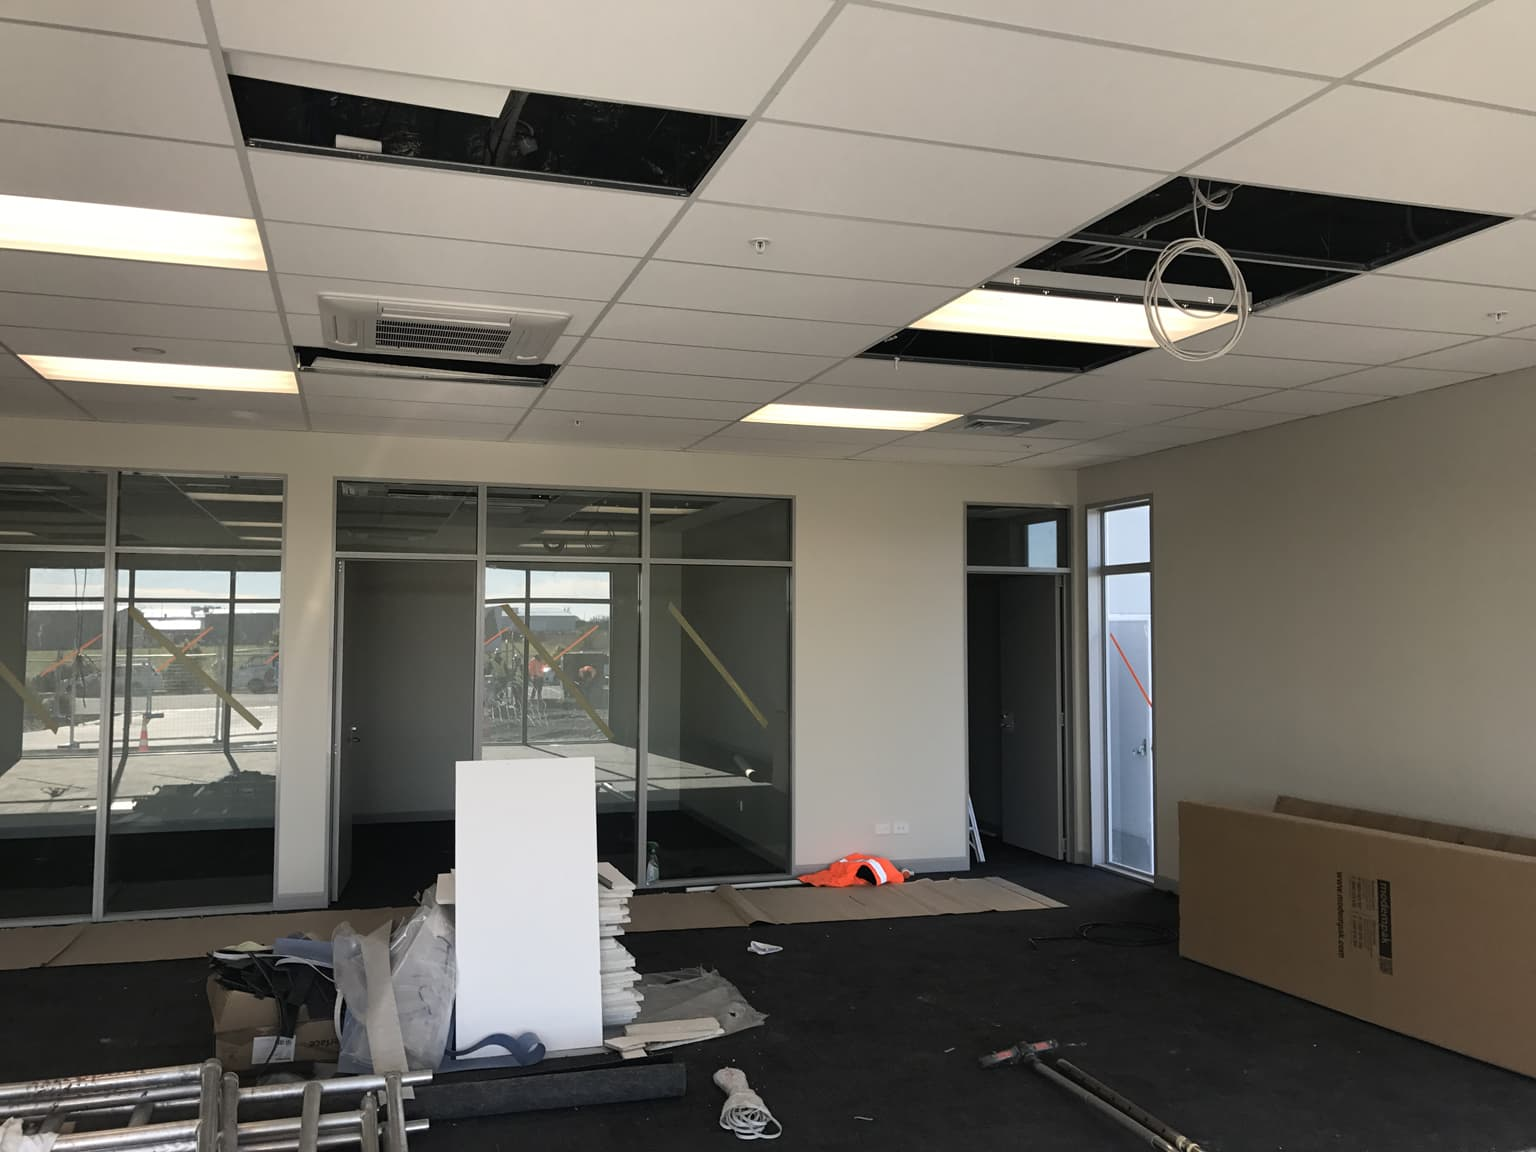 A commercial construction project undertaken by H3 Construction in Christchurch